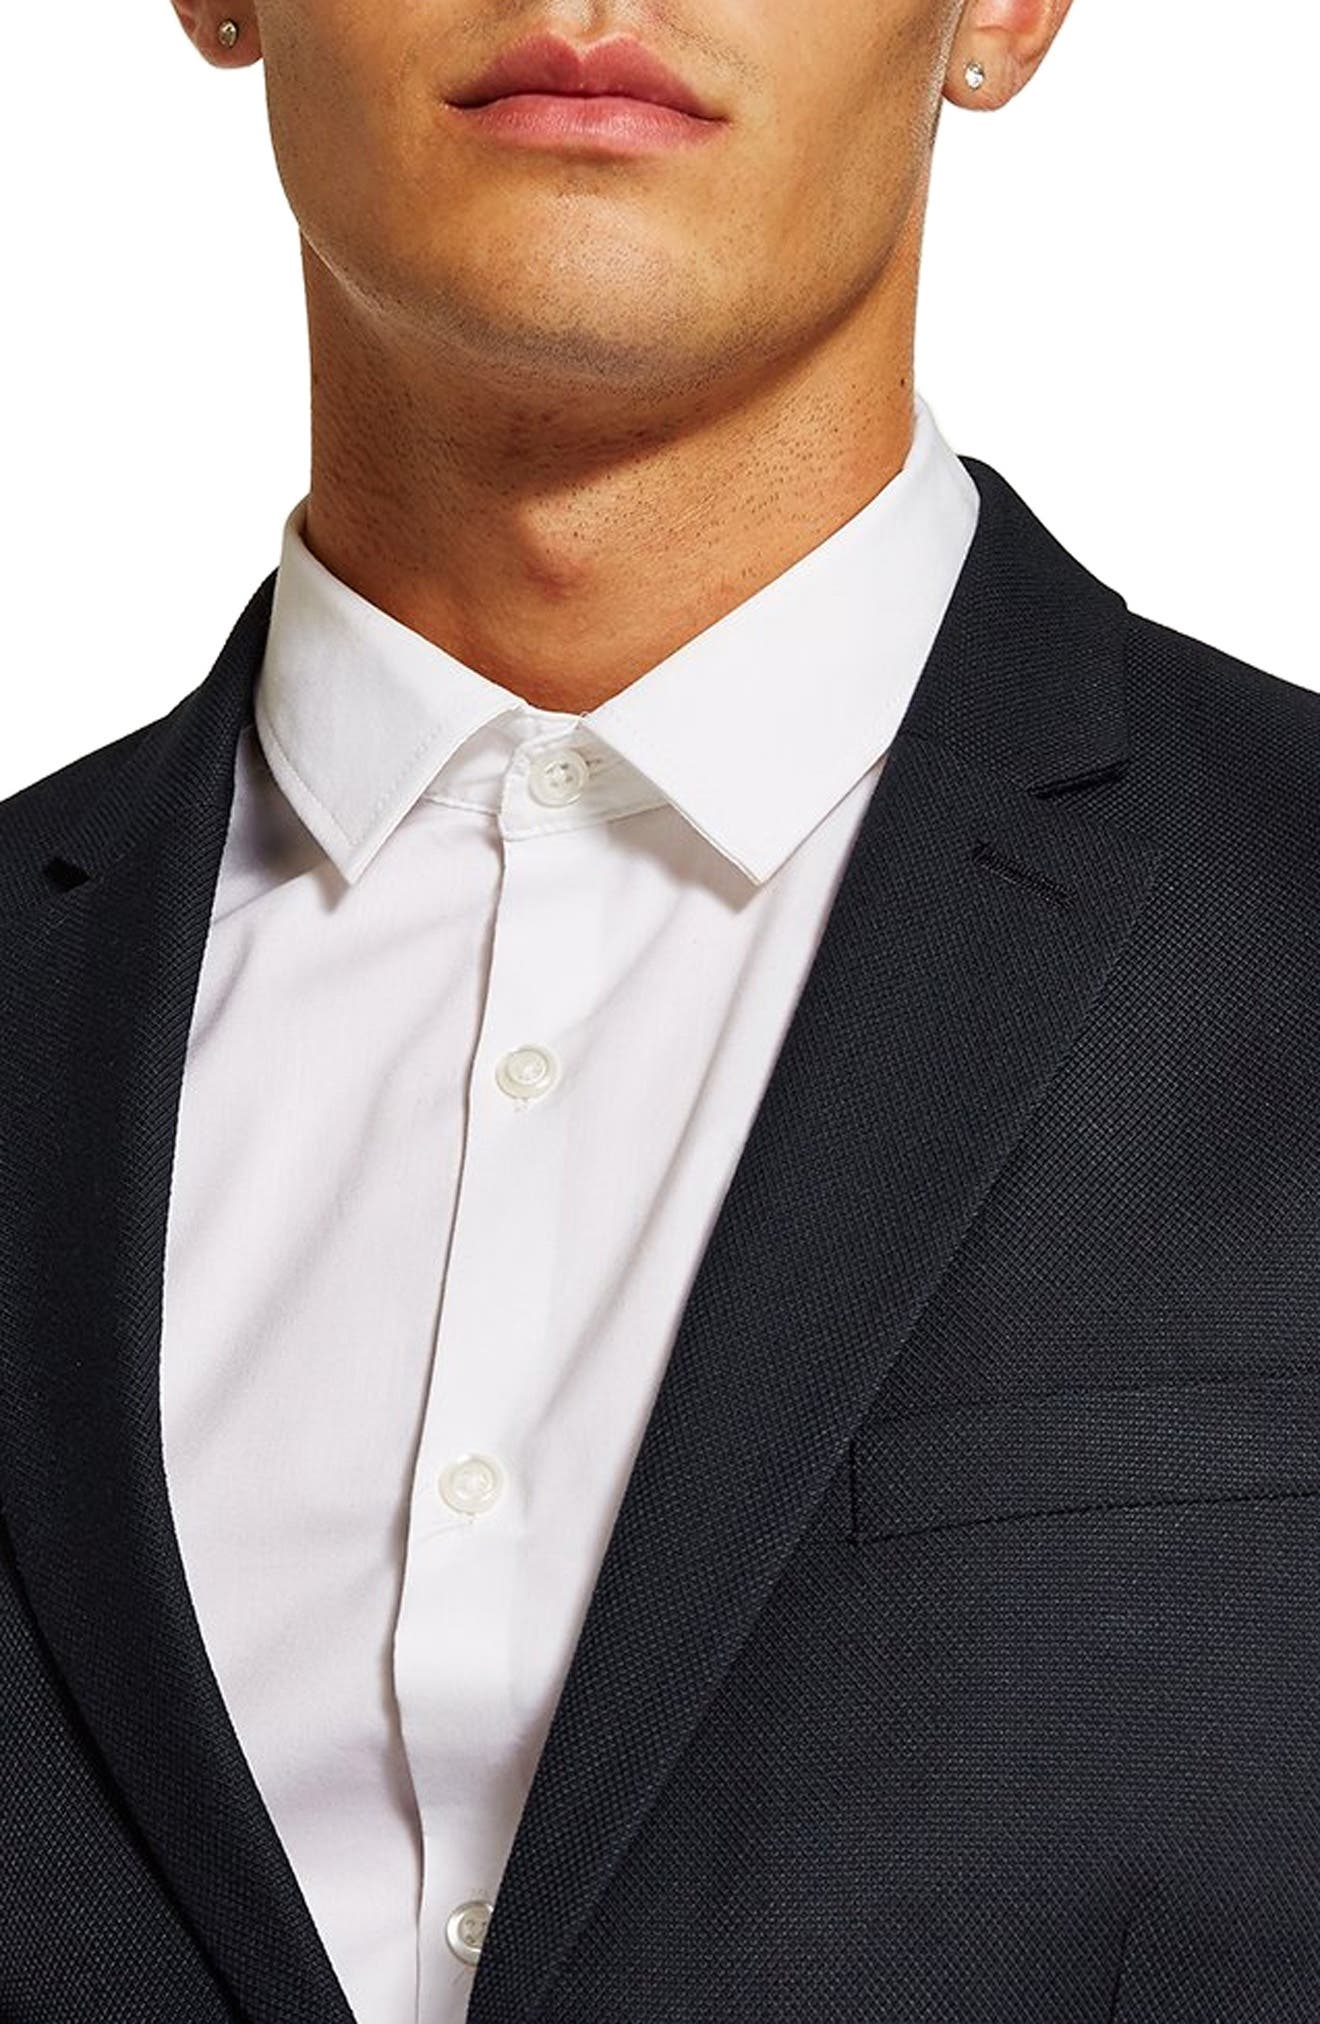 Skinny Fit Textured Suit Jacket,                             Alternate thumbnail 3, color,                             DARK BLUE